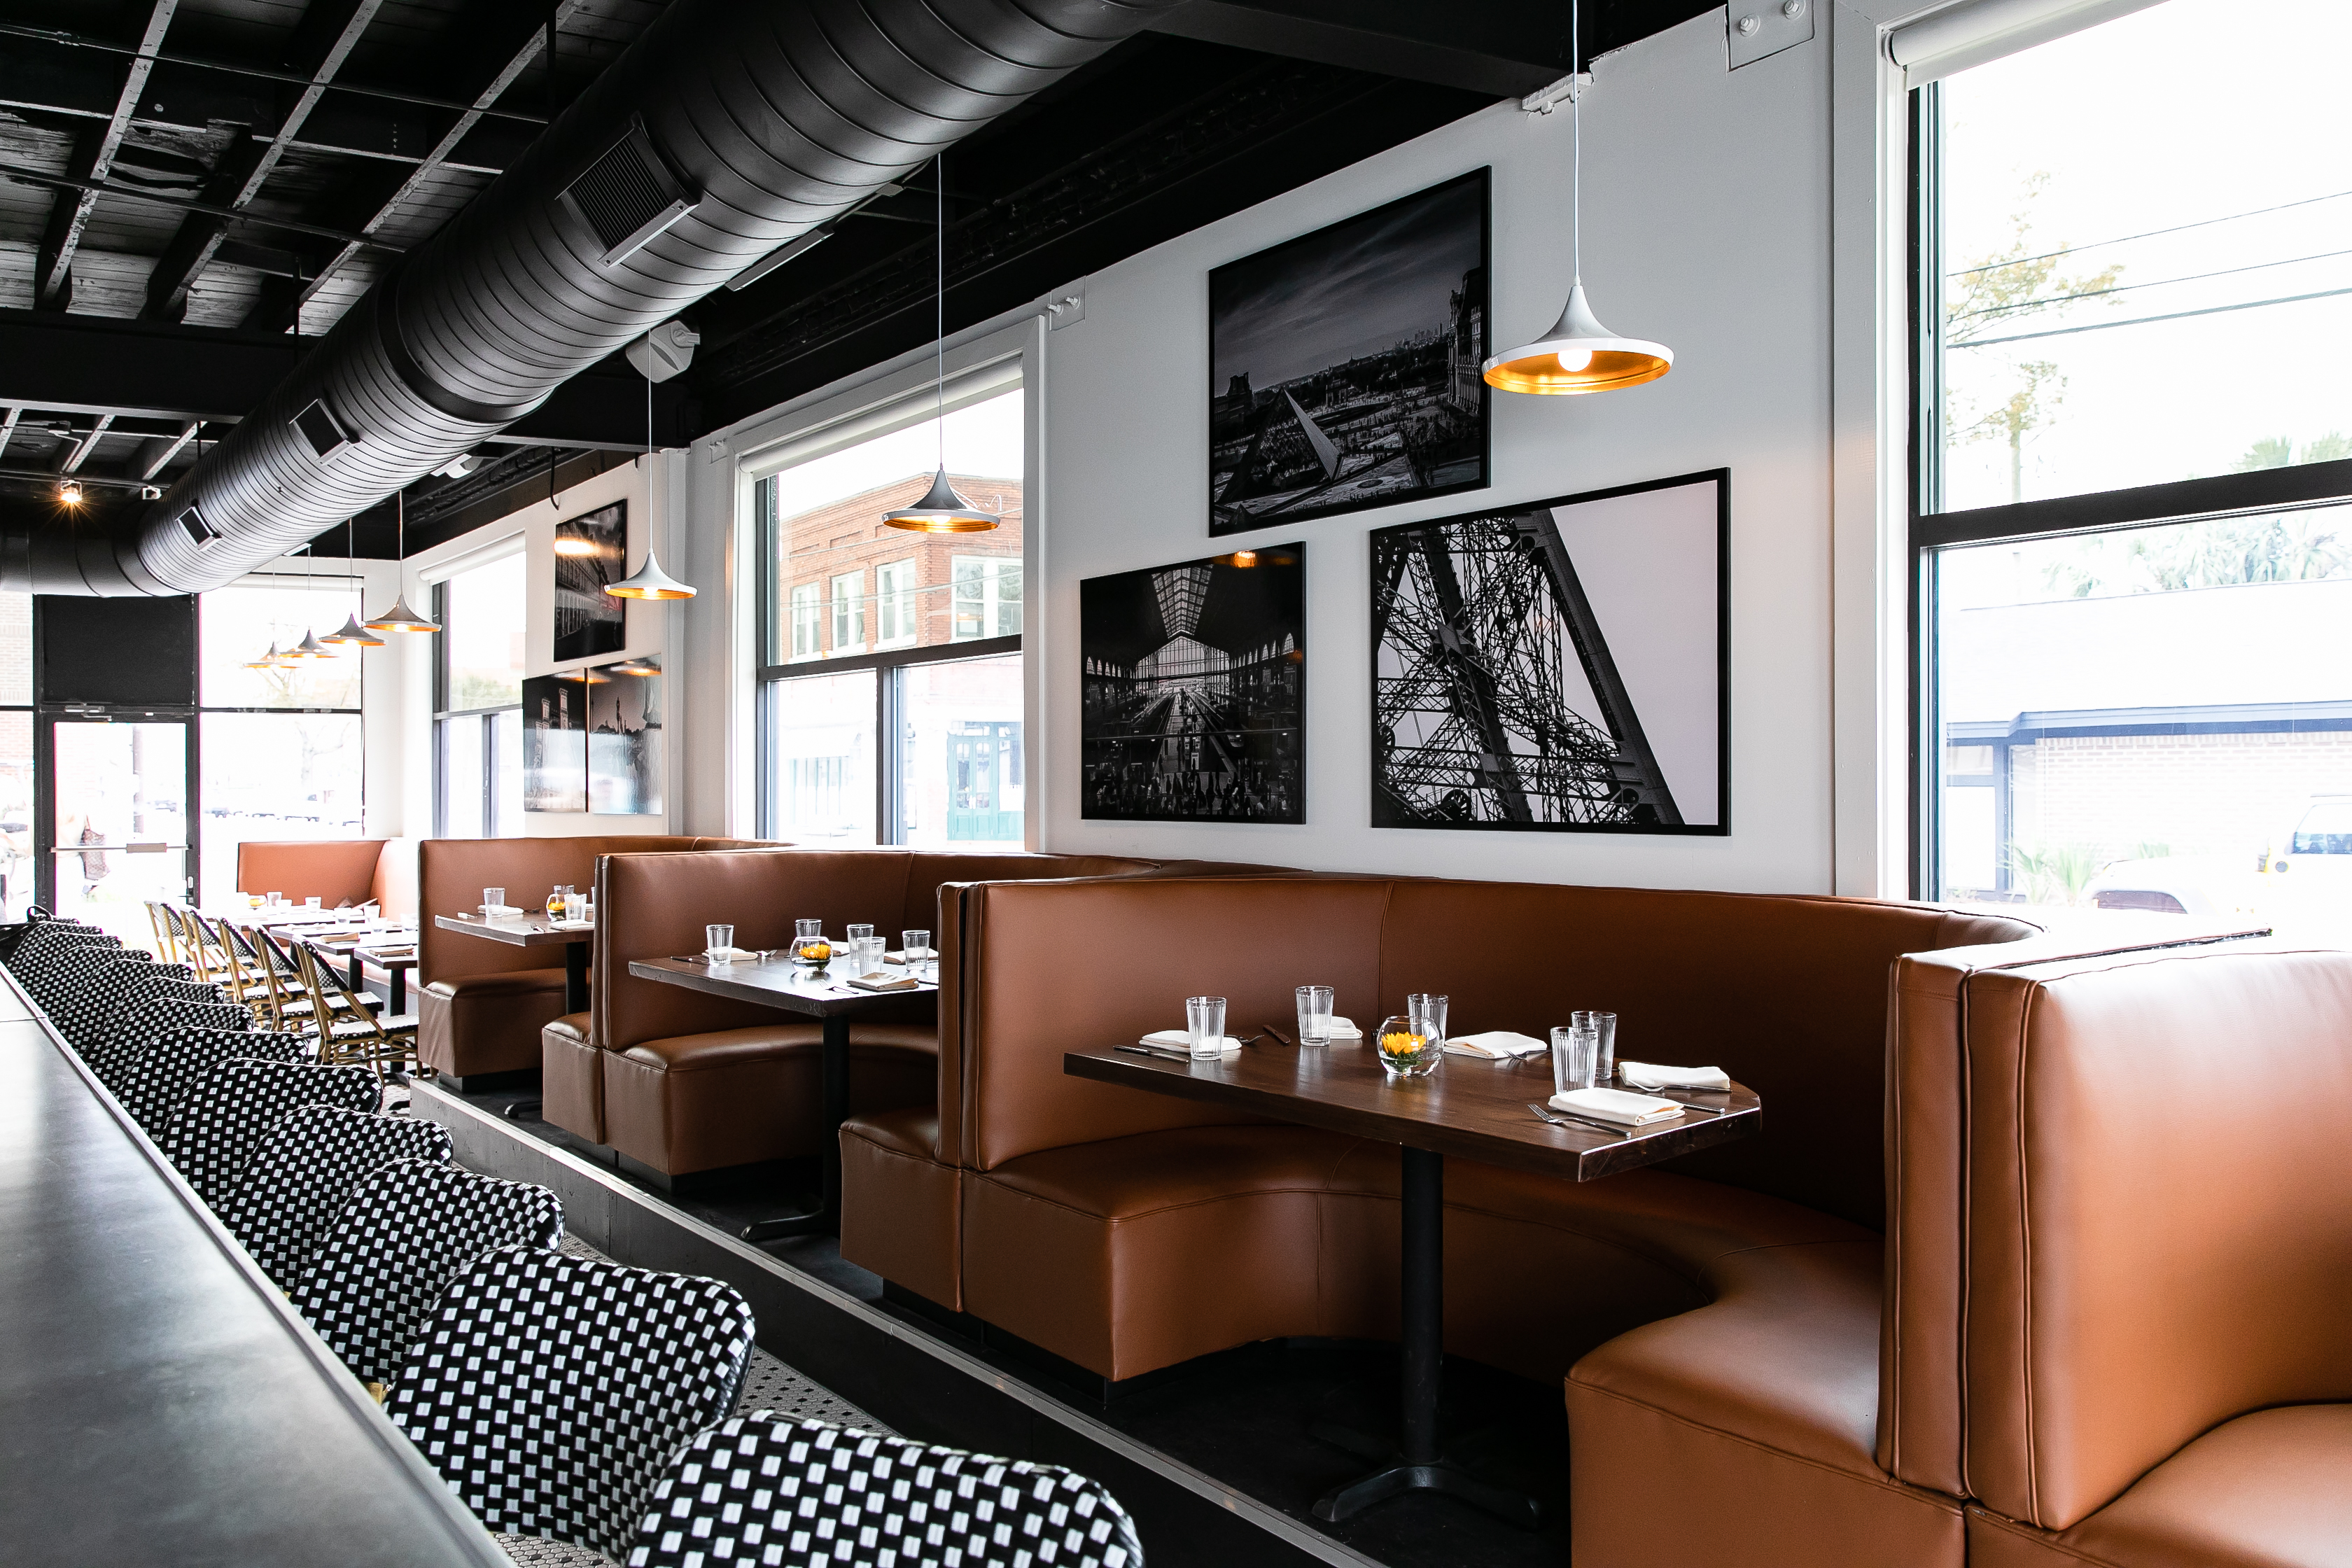 Food 'Seals the Deal' at North Central Bistro Maison